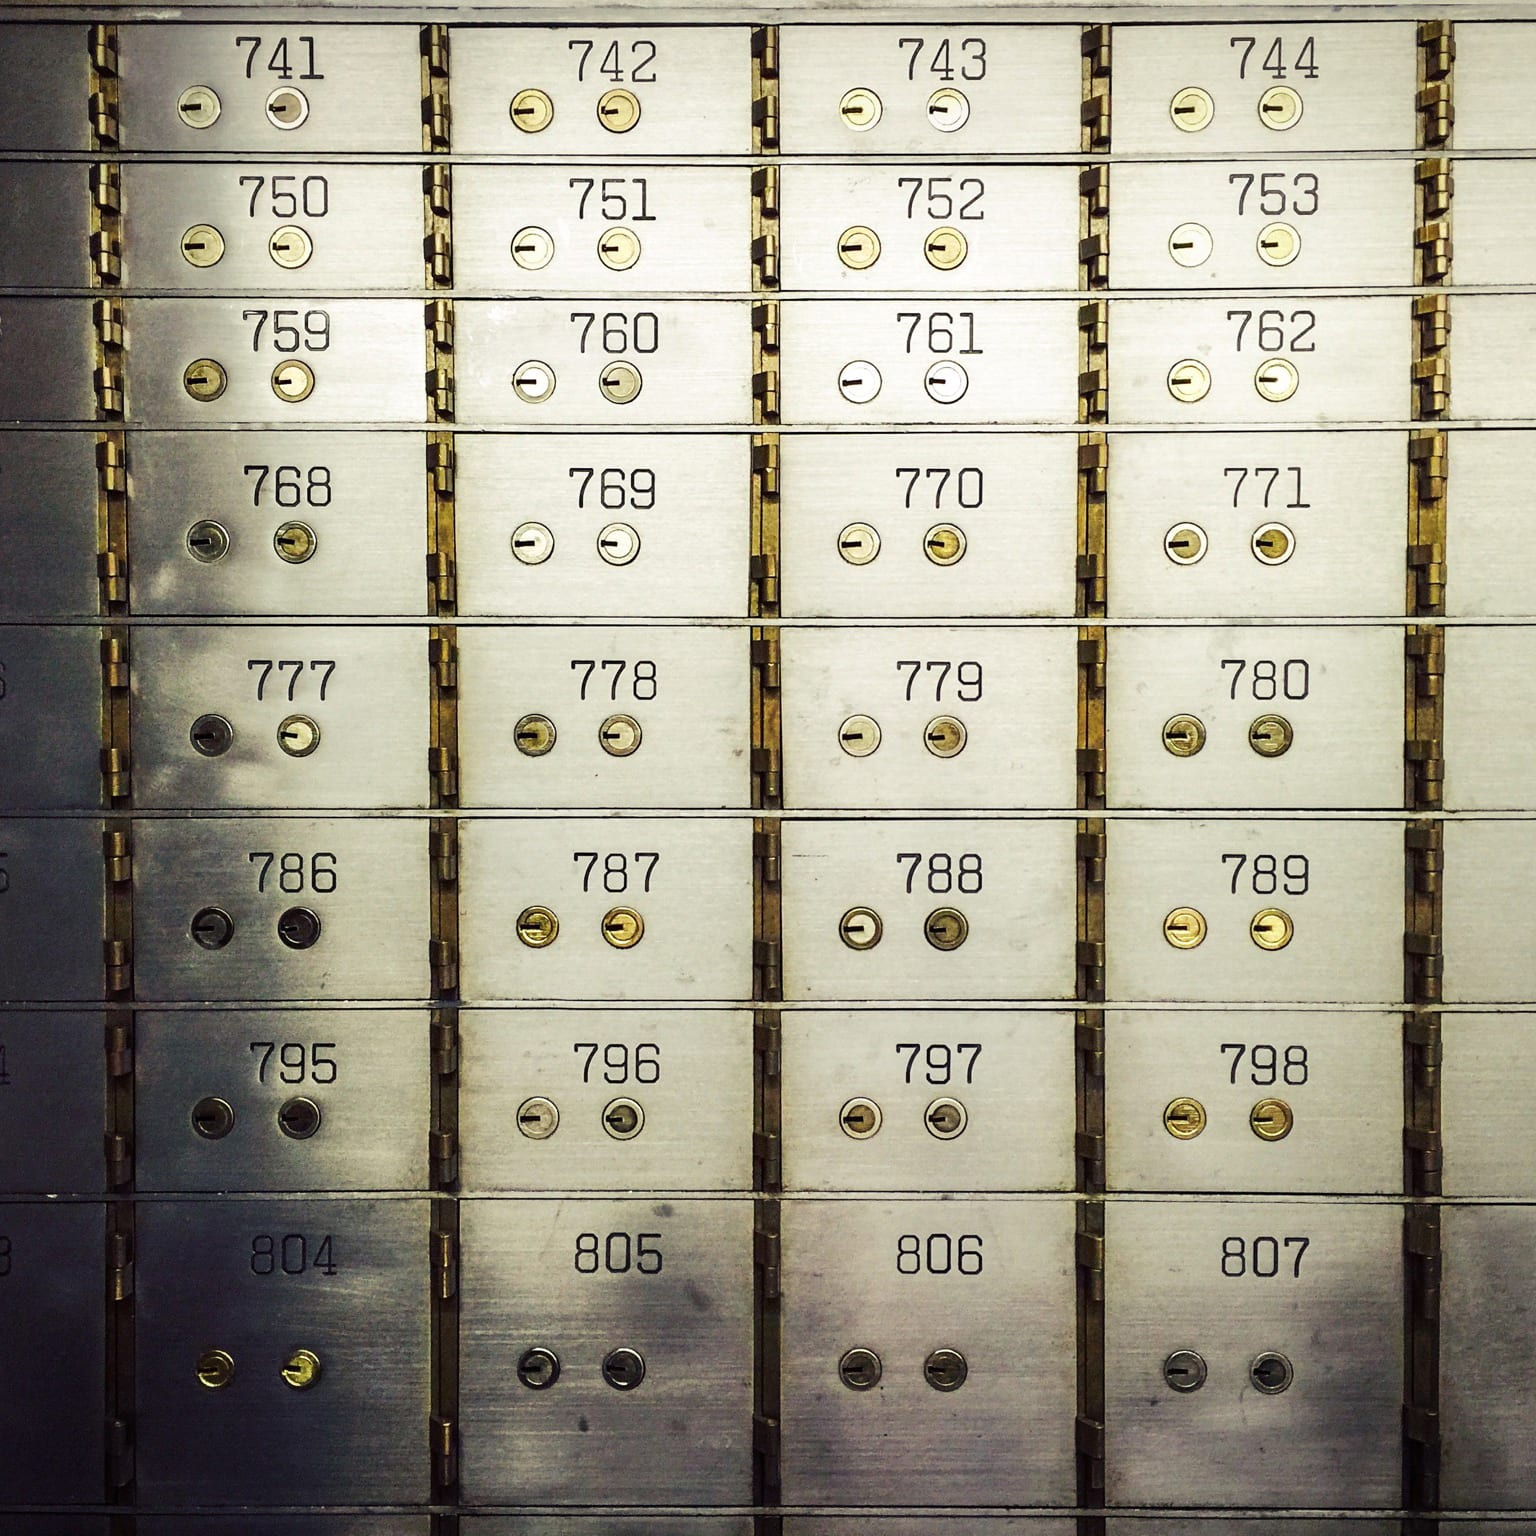 Wall of safe deposit boxes inside a bank vault